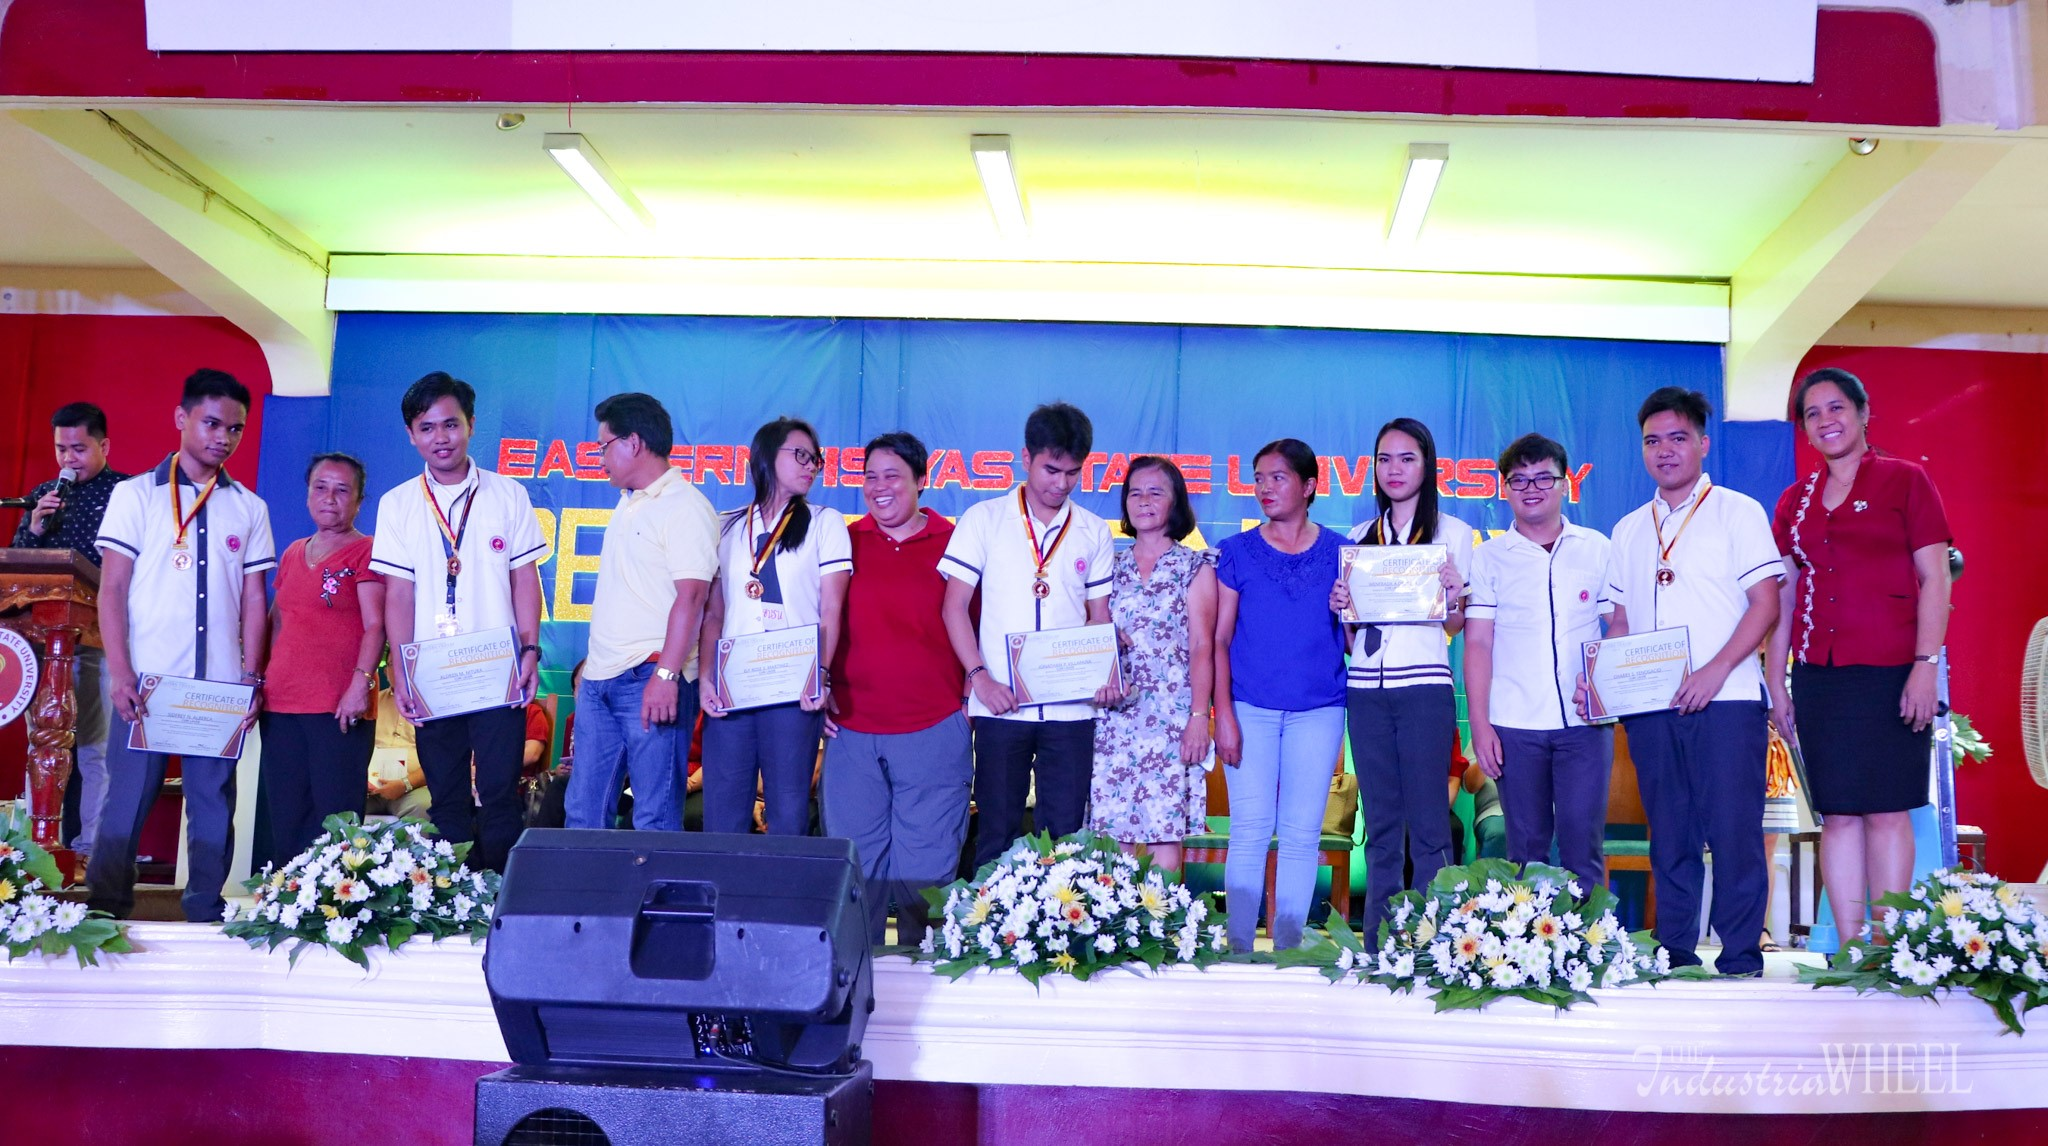 Recognition Day 2019